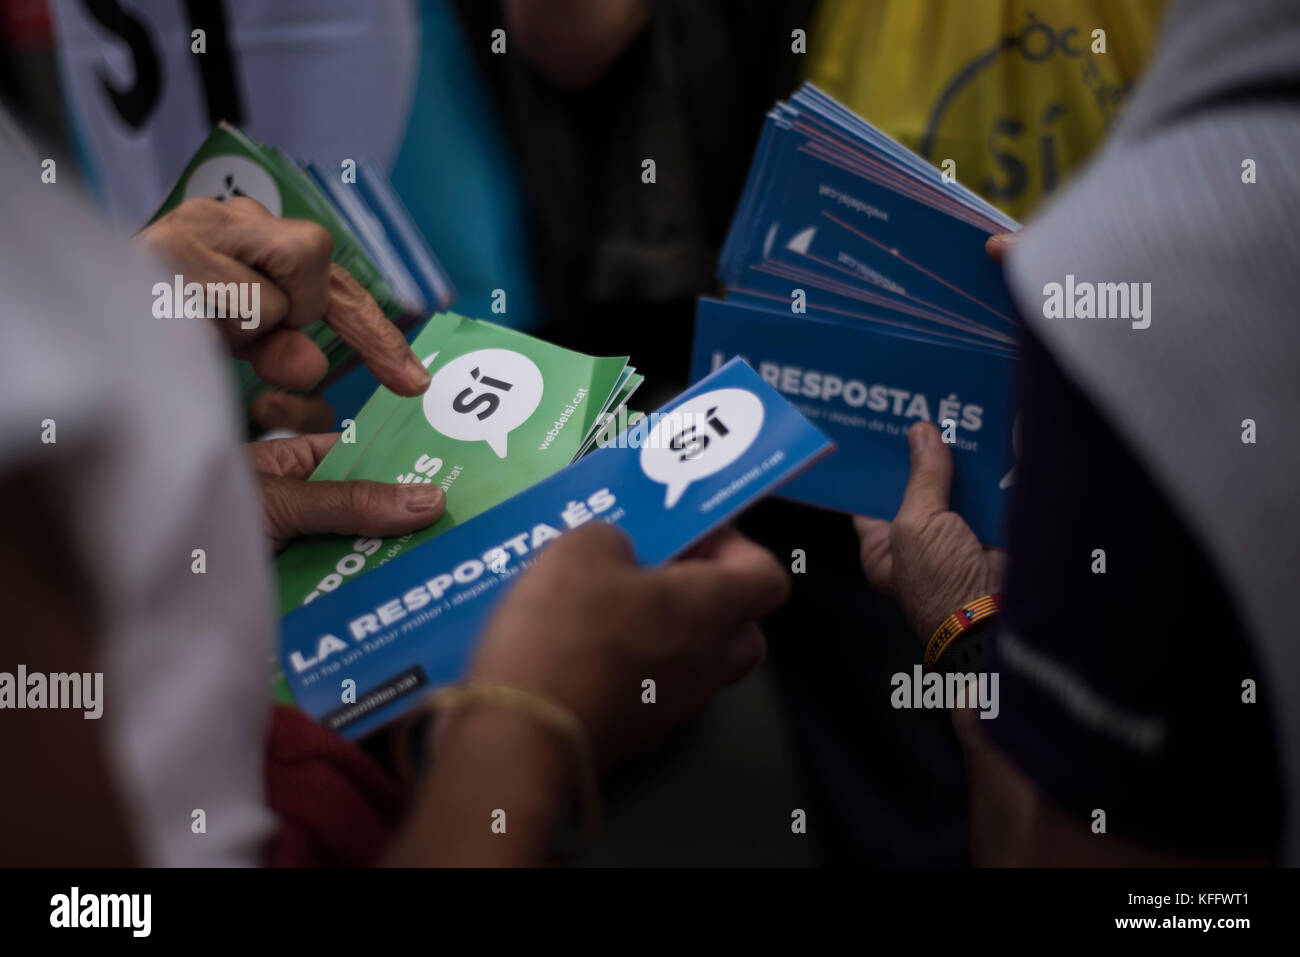 Members of the Catalan National Assembly (ANC) prepare leaflets to distribute in Barcelona. Credit: Alamy / Carles - Stock Image